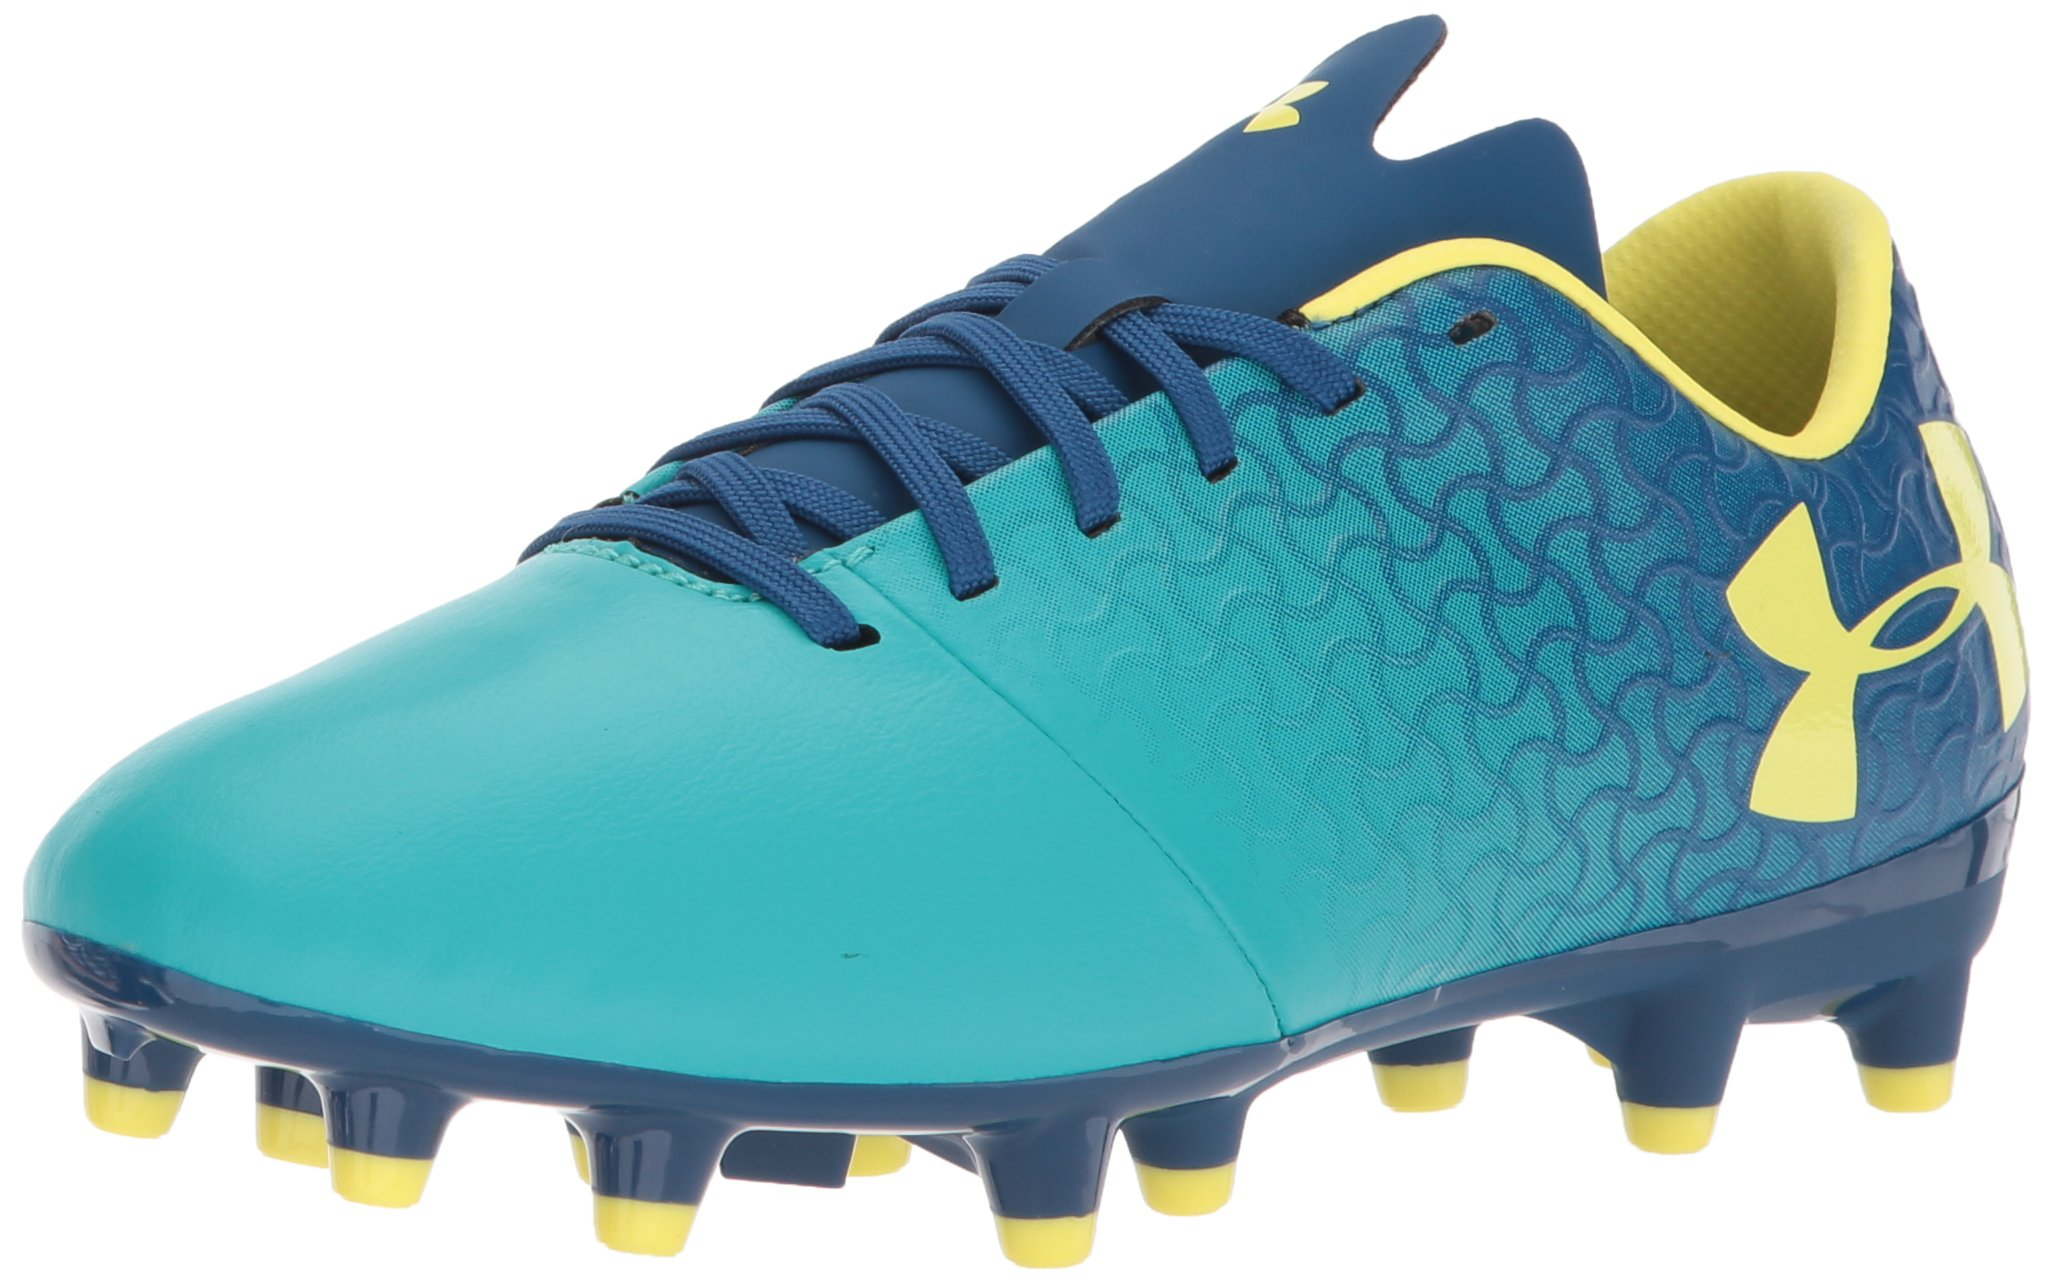 Under Armour Magnetico Select JR FG Soccer Shoe, Teal Punch (300)/Moroccan Blue, 5.5